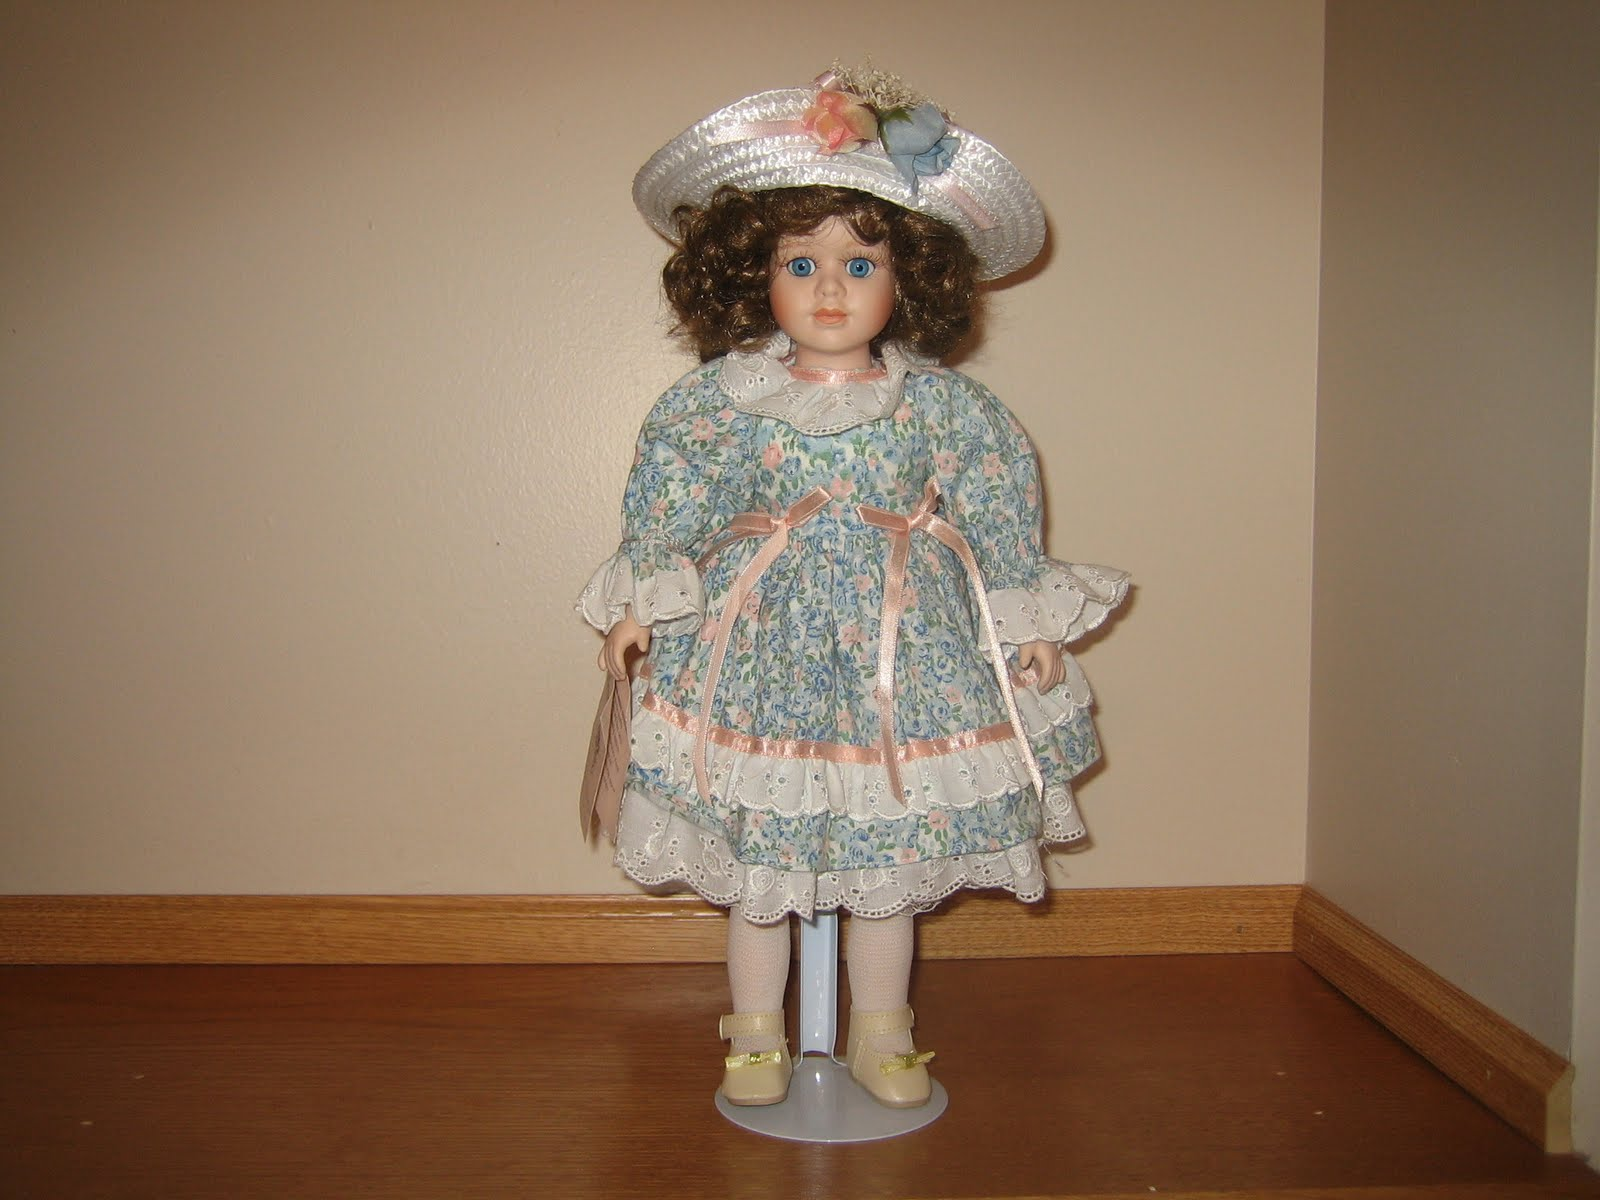 Virtual Garage Sale: Bradley's Collectible Porcelain Doll ...